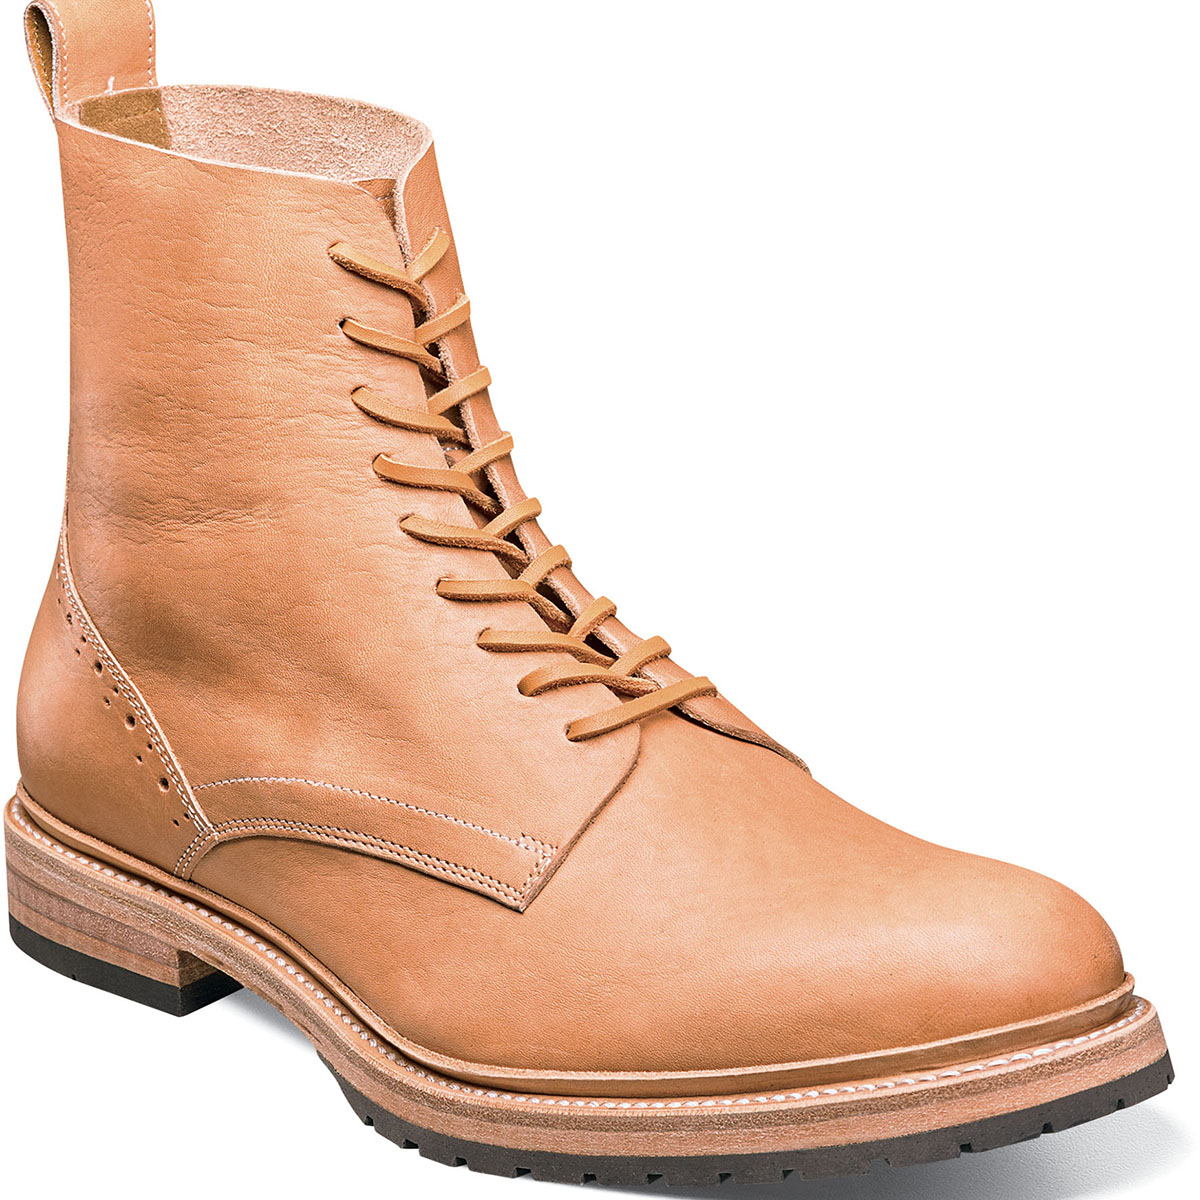 Stacy Adams M2 High Top Plain Toe Boot Natural